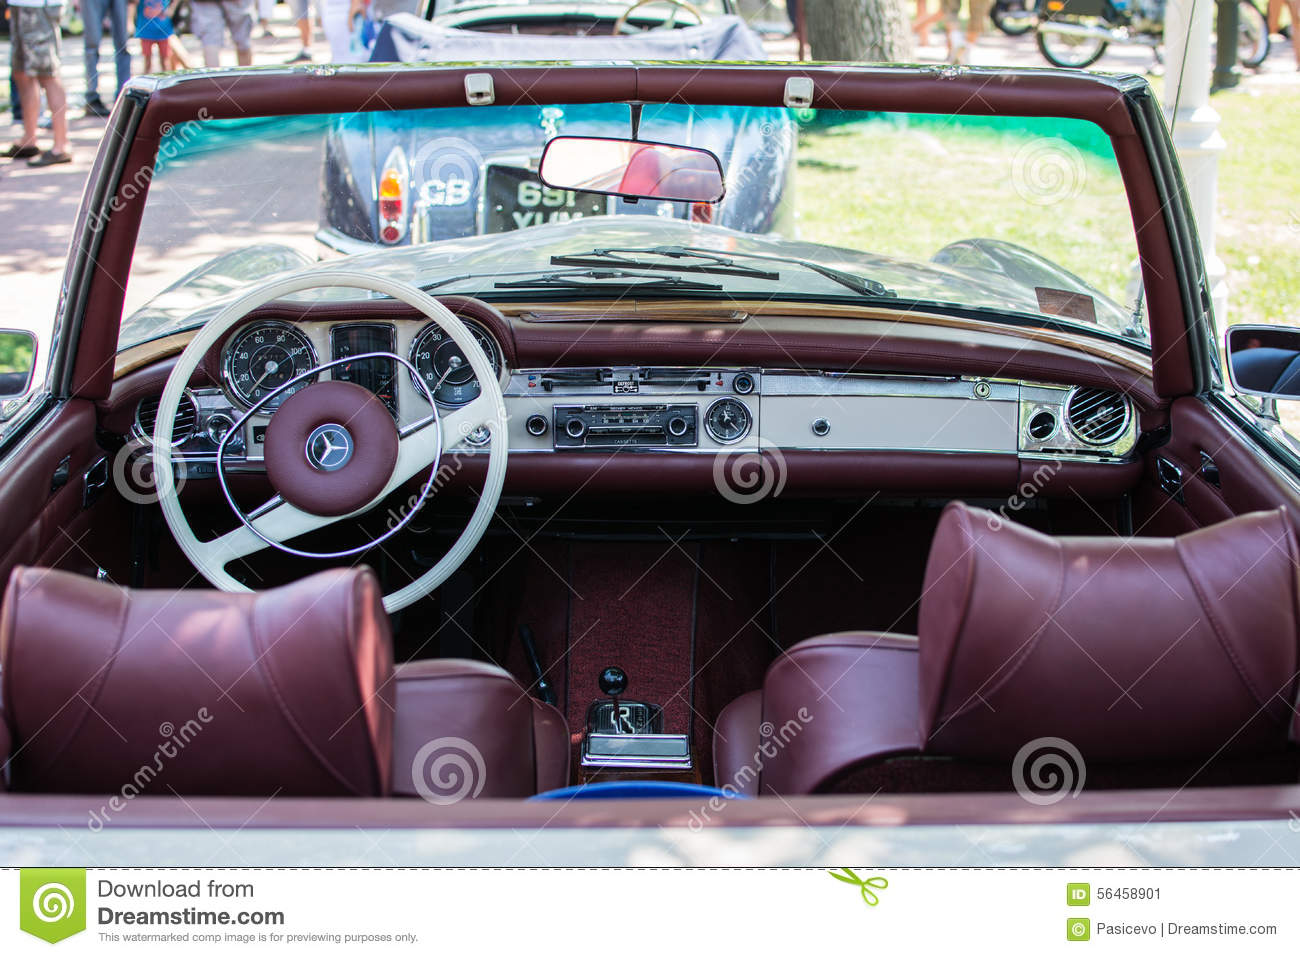 Mercedes sl280 from 1971 on annual oldtimer car show - Mercedes car show ...